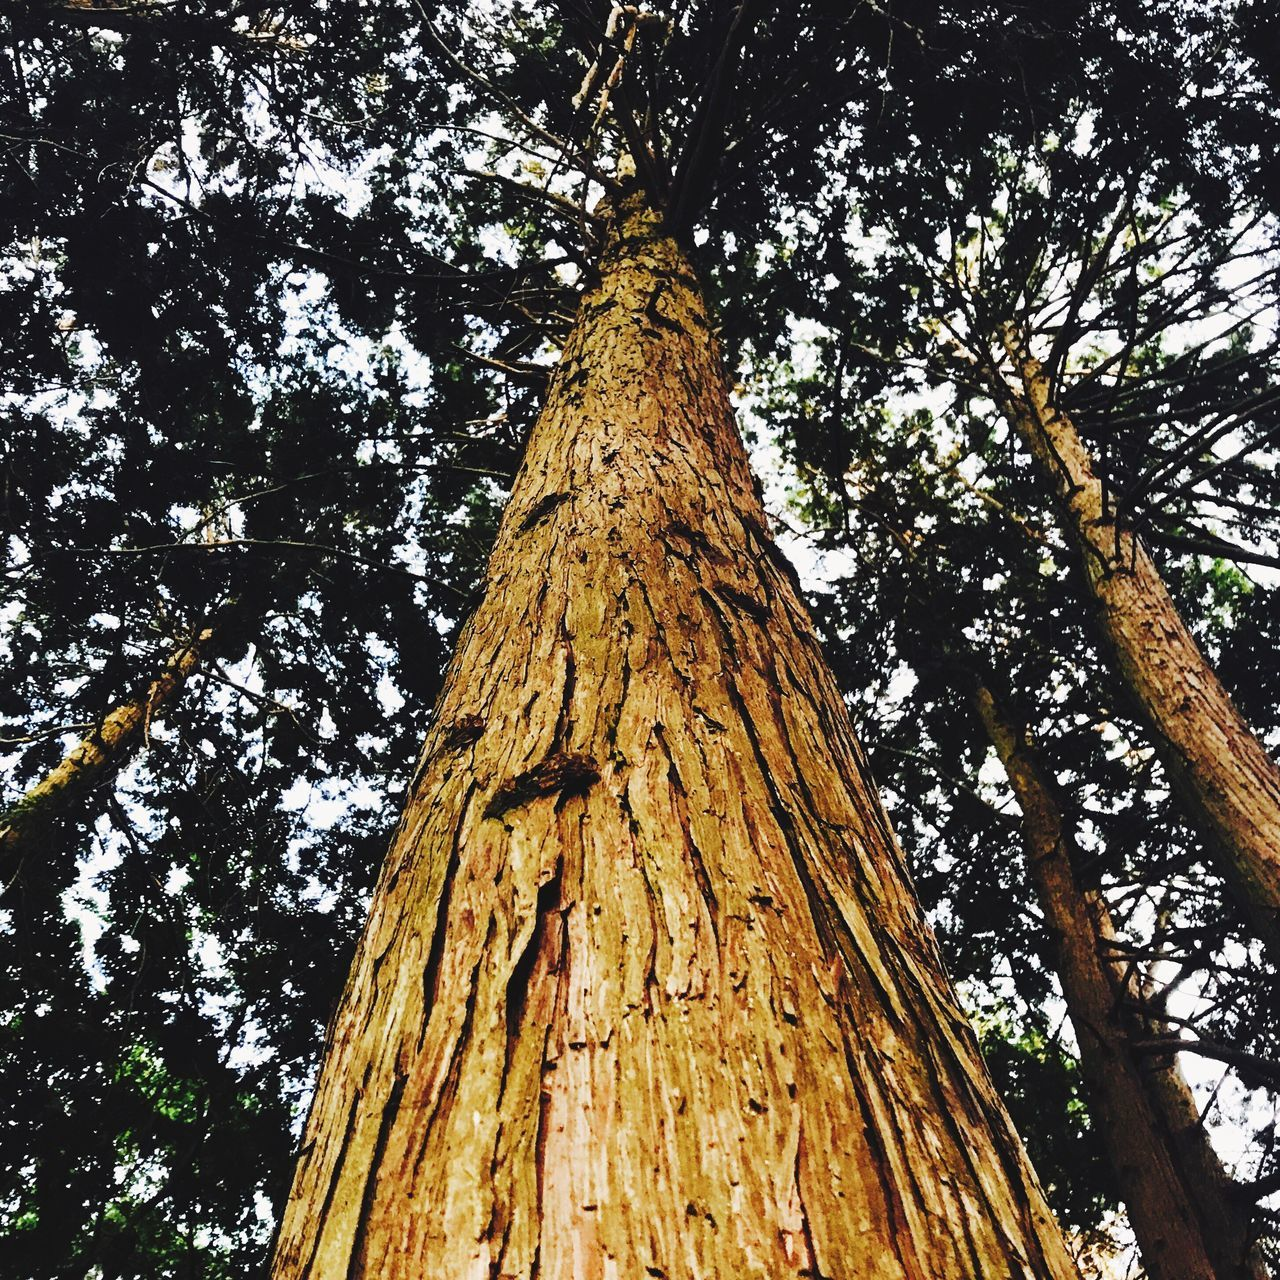 tree trunk, tree, low angle view, nature, bark, growth, day, branch, outdoors, no people, textured, wood - material, tranquility, forest, beauty in nature, close-up, sky